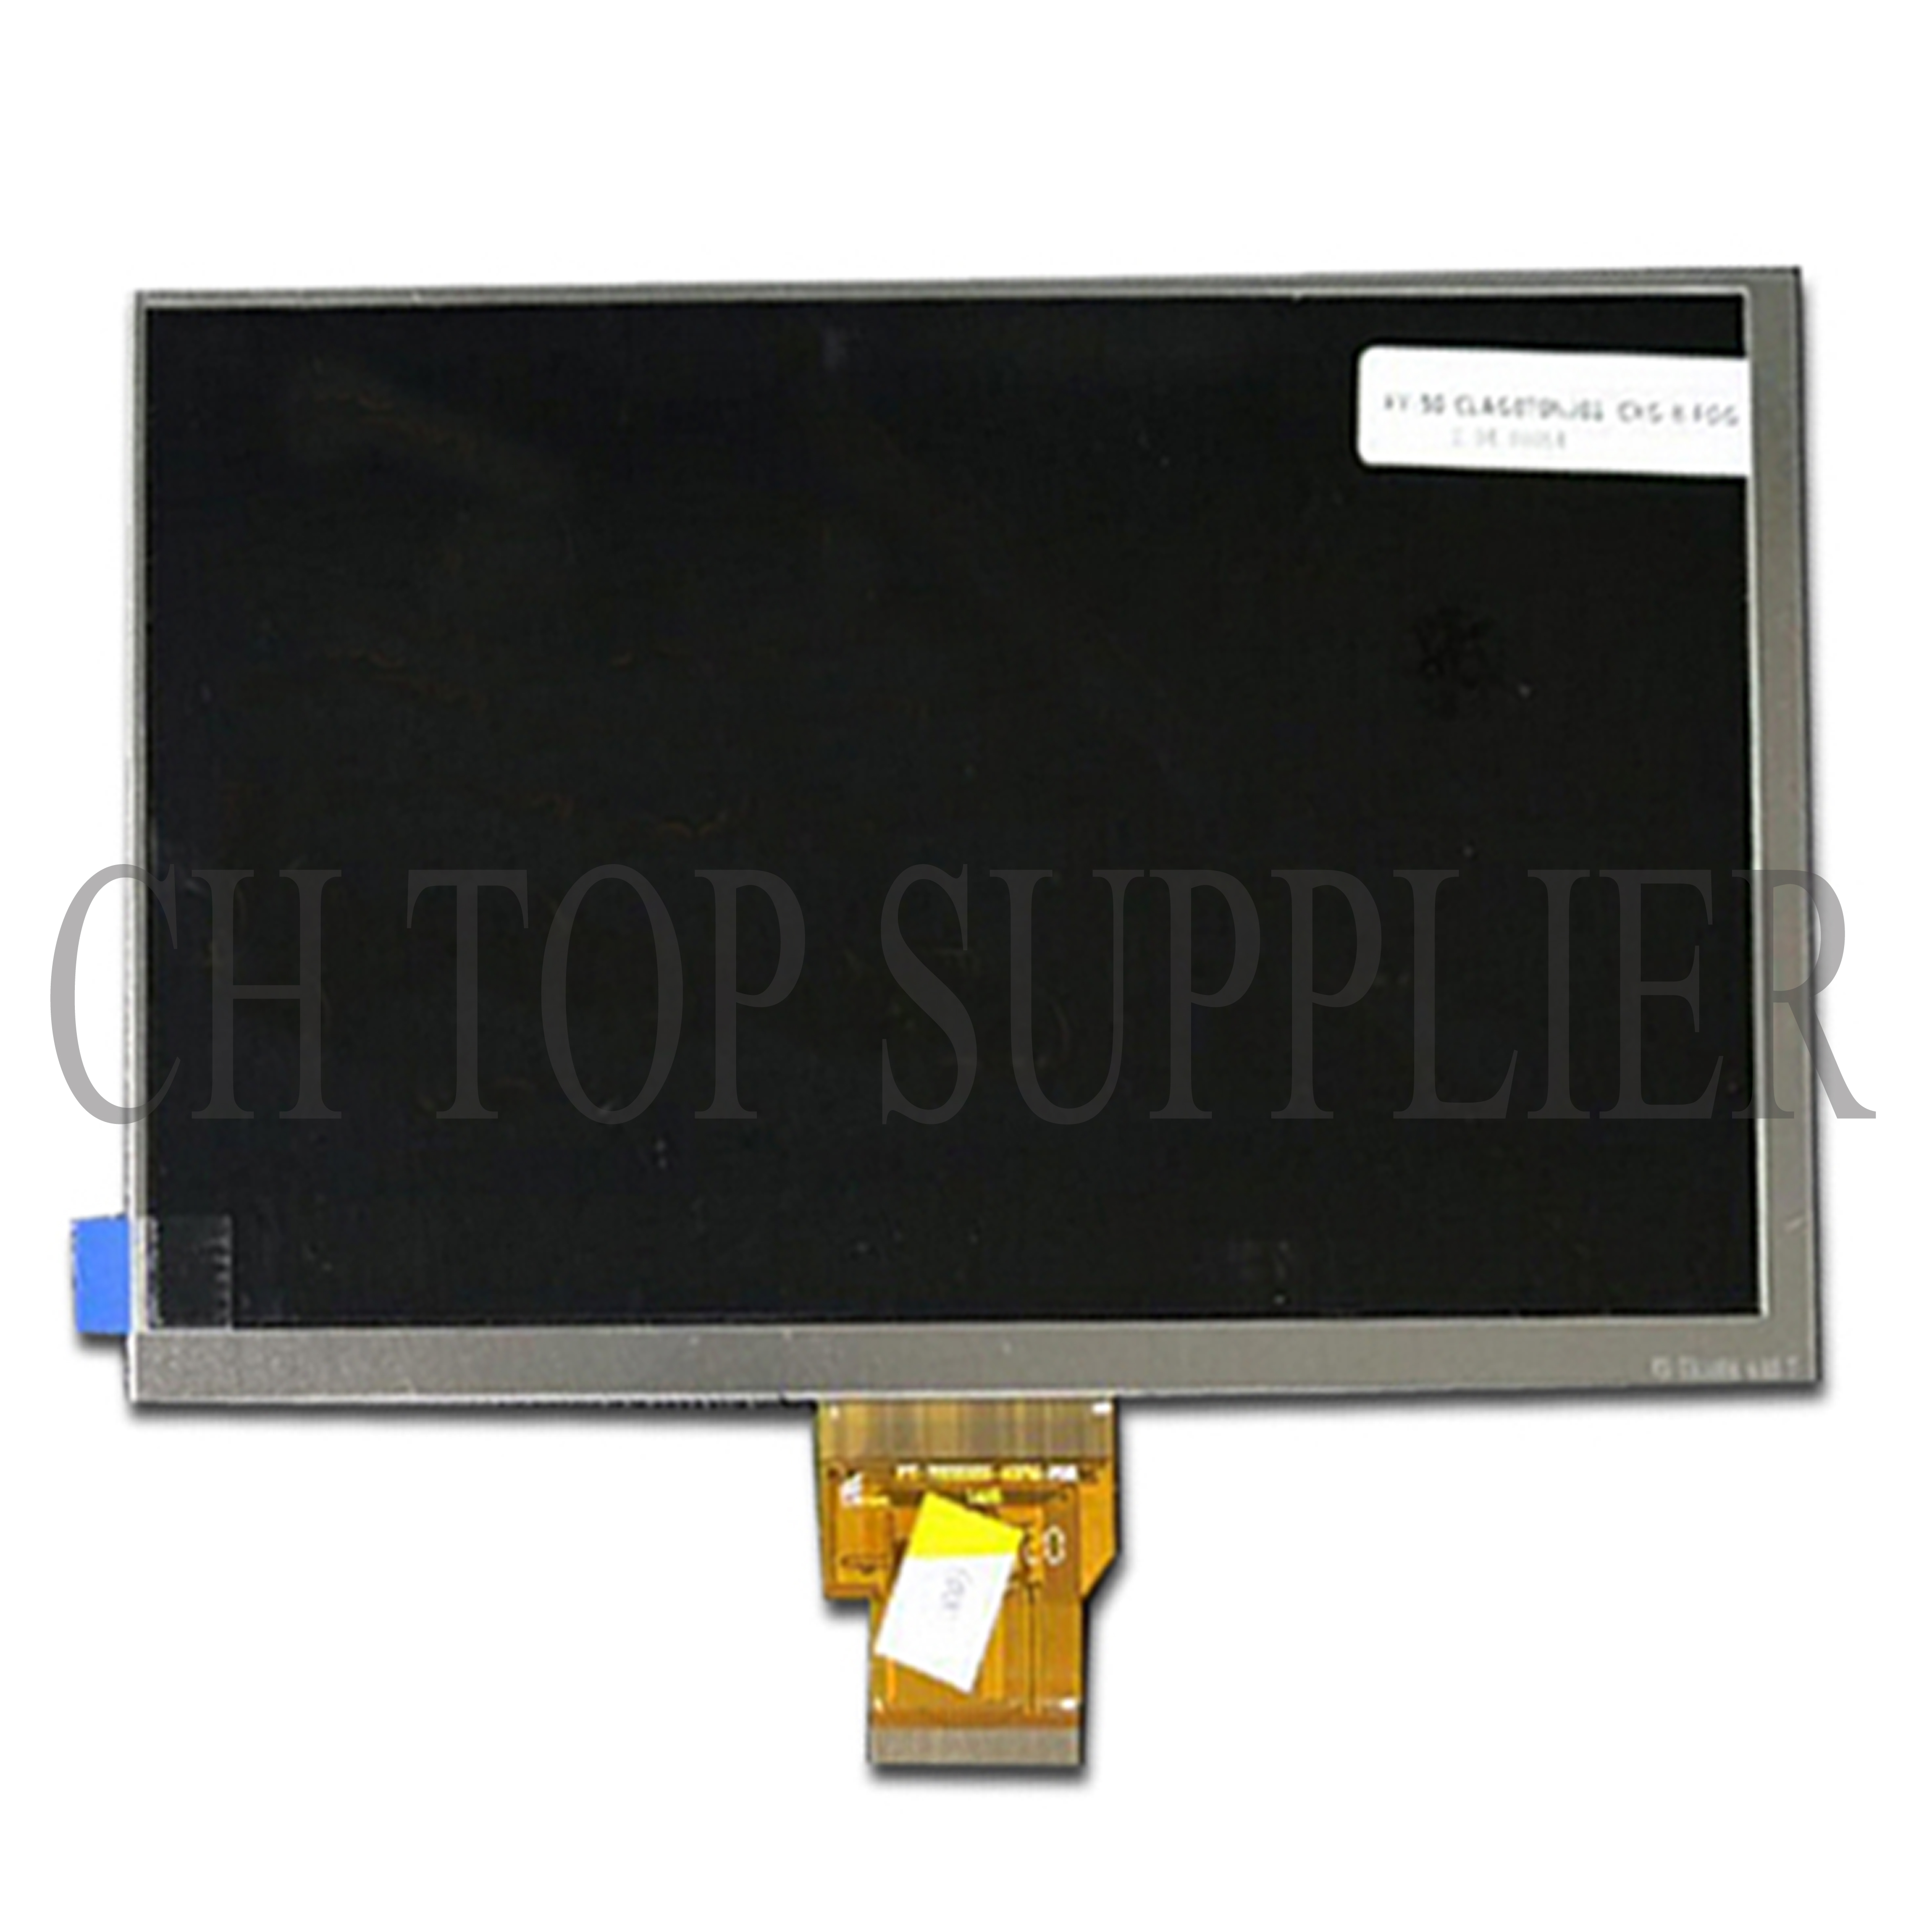 New LCD Display 7 inch for Digma hit 3G ht7070mg Tablet TFT 40pin Screen Matrix Digital Replacement Panel Free Shipping